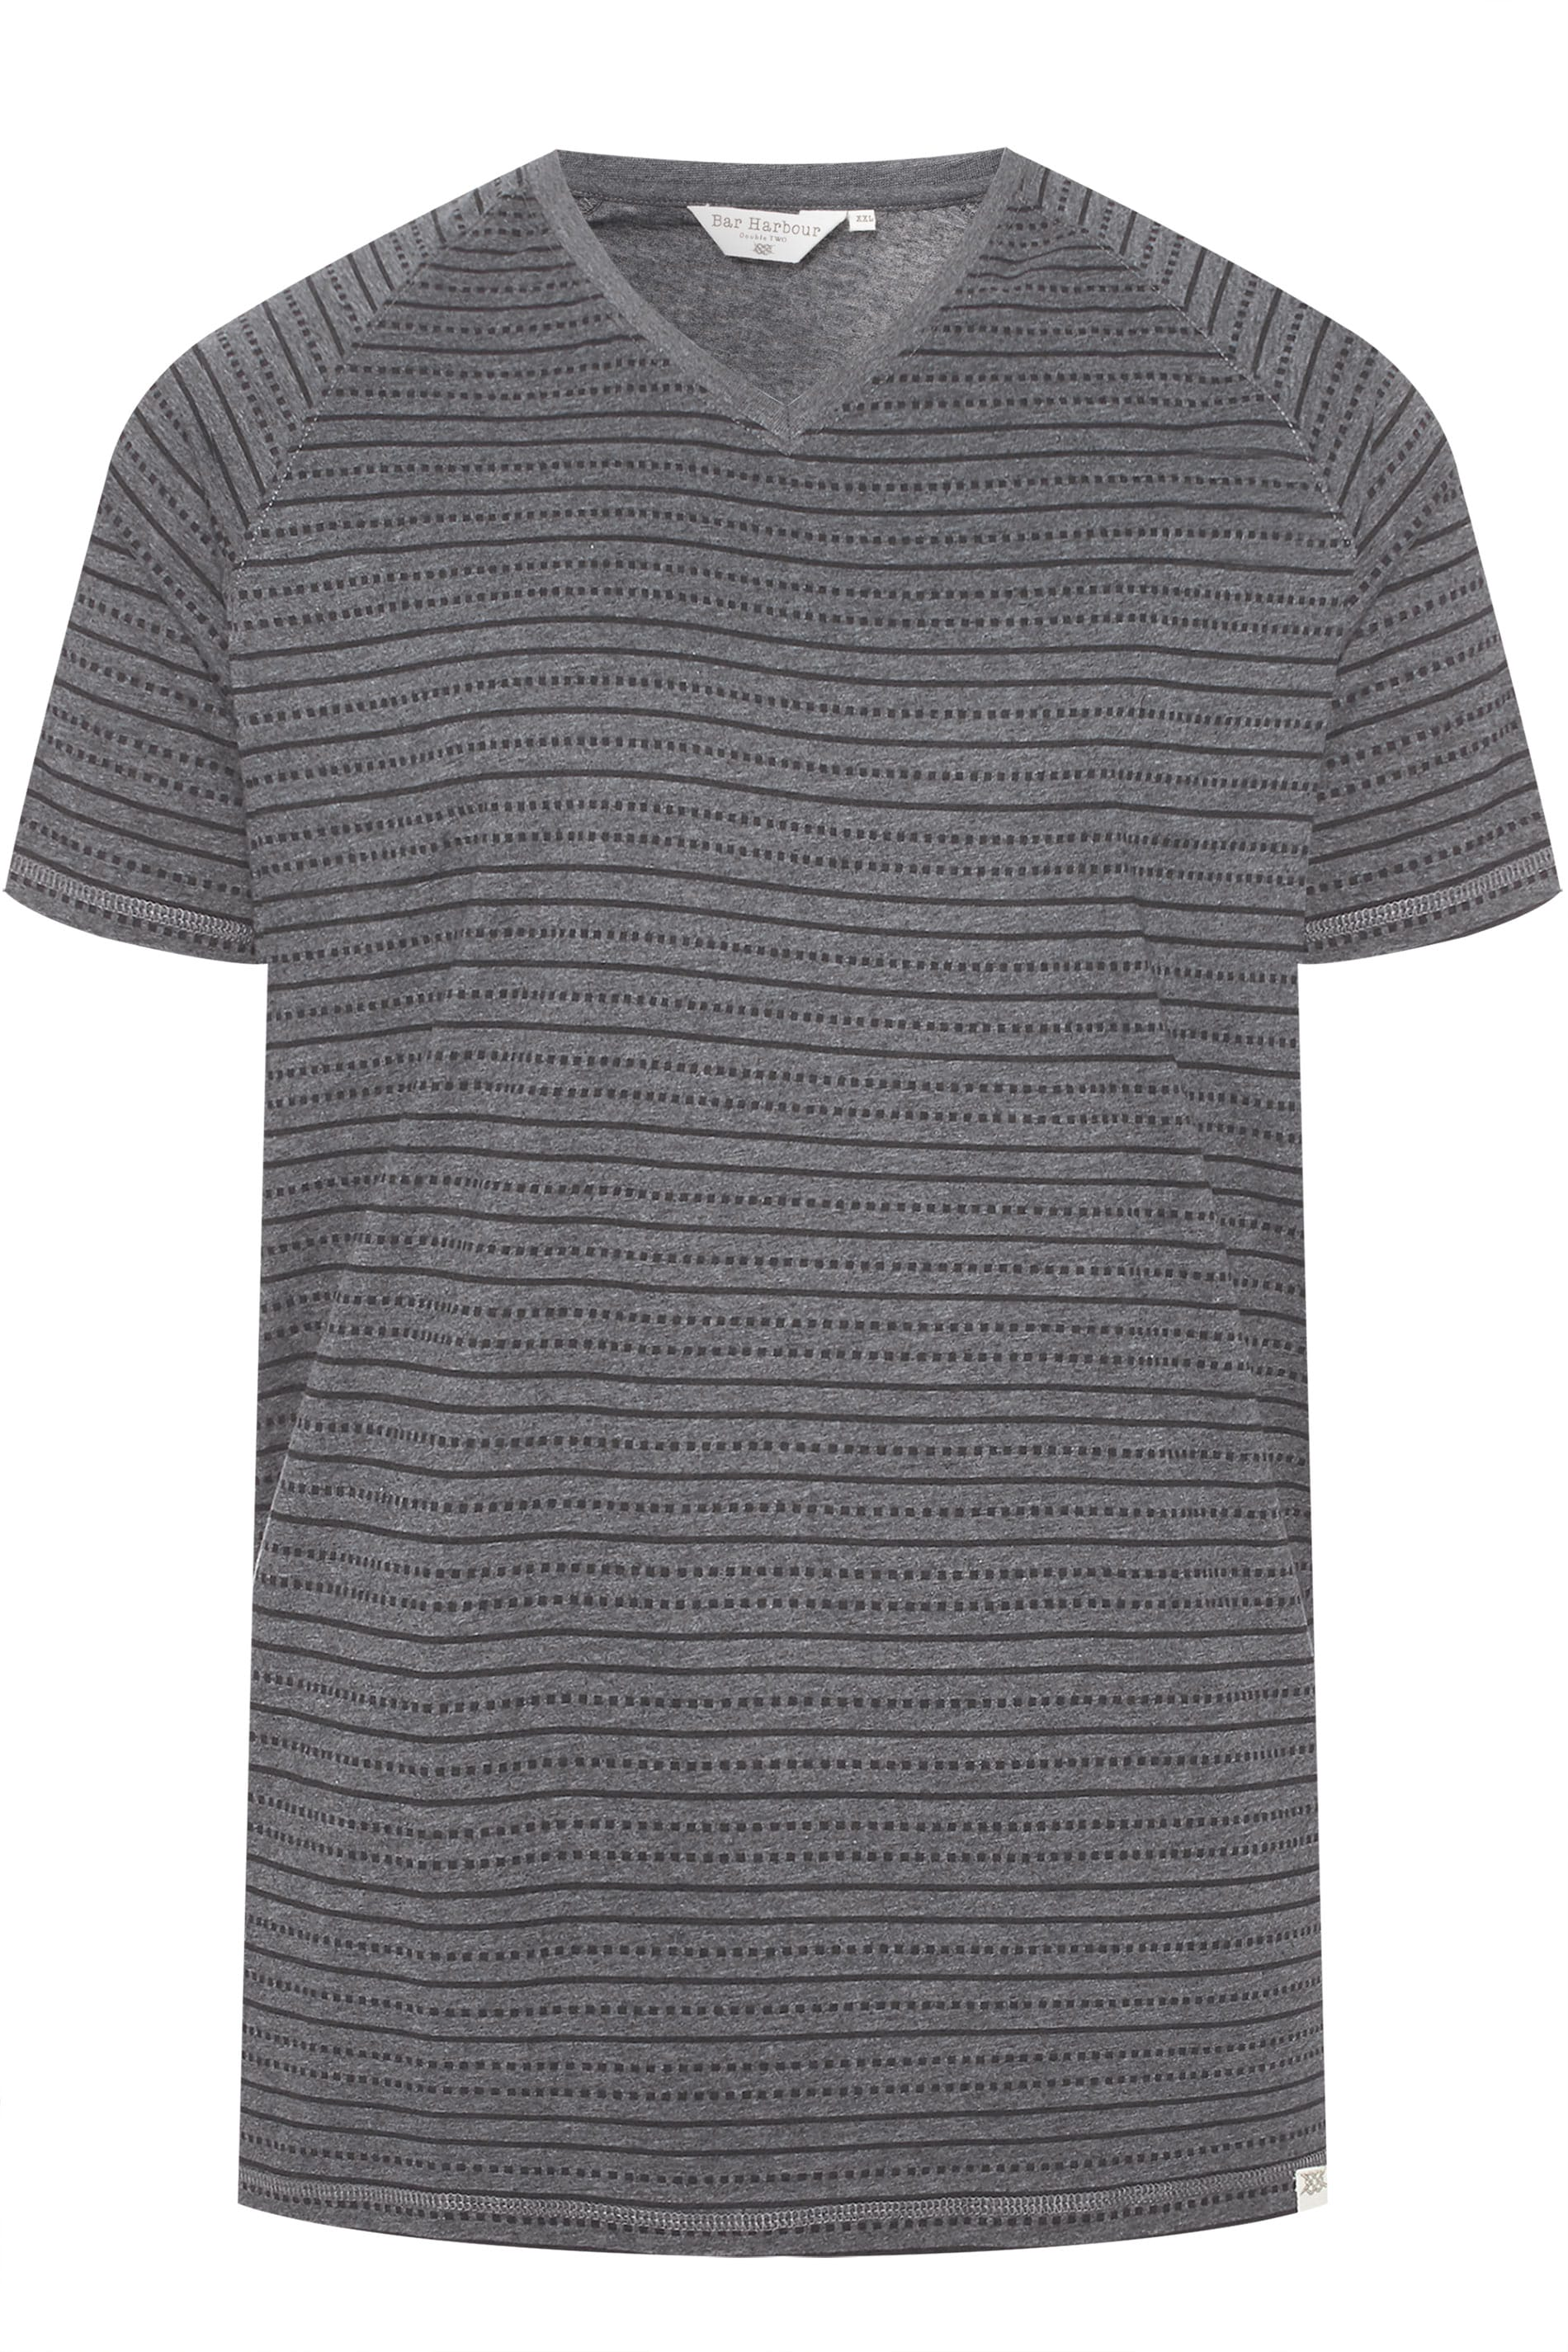 BAR HARBOUR Charcoal Printed T-Shirt